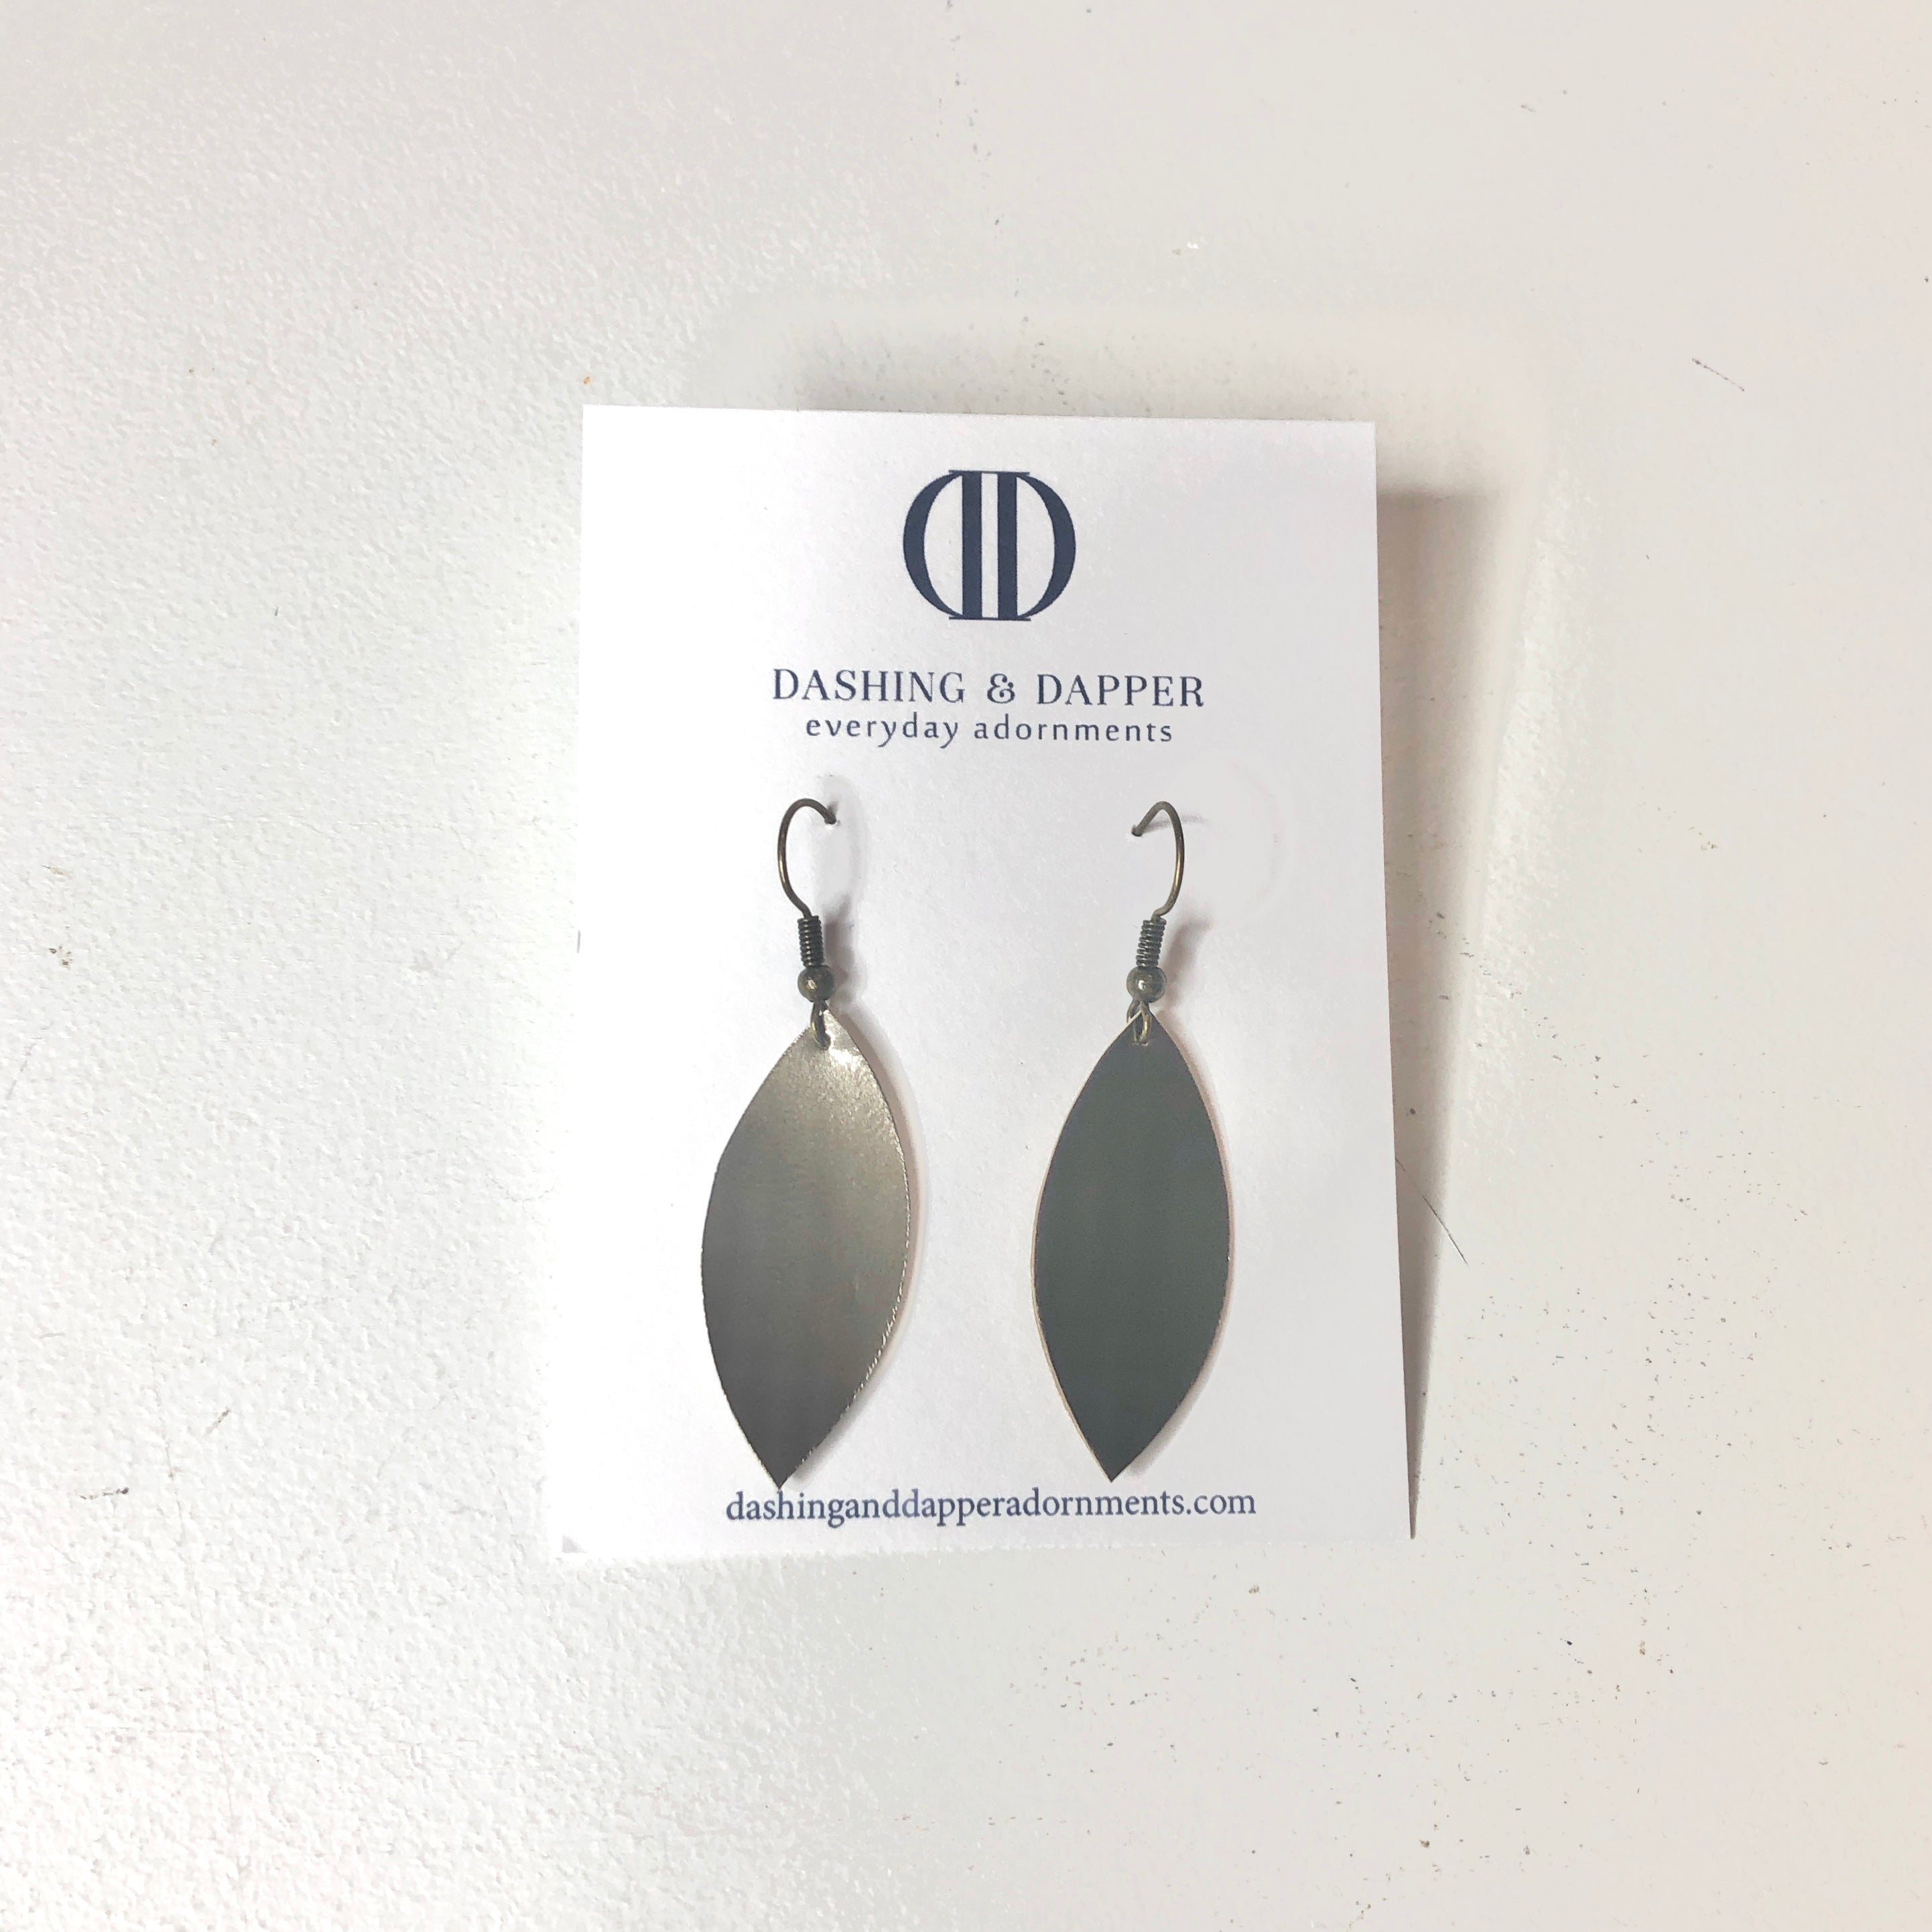 D&D Small Leather Earrings - Shiny Dark Silver